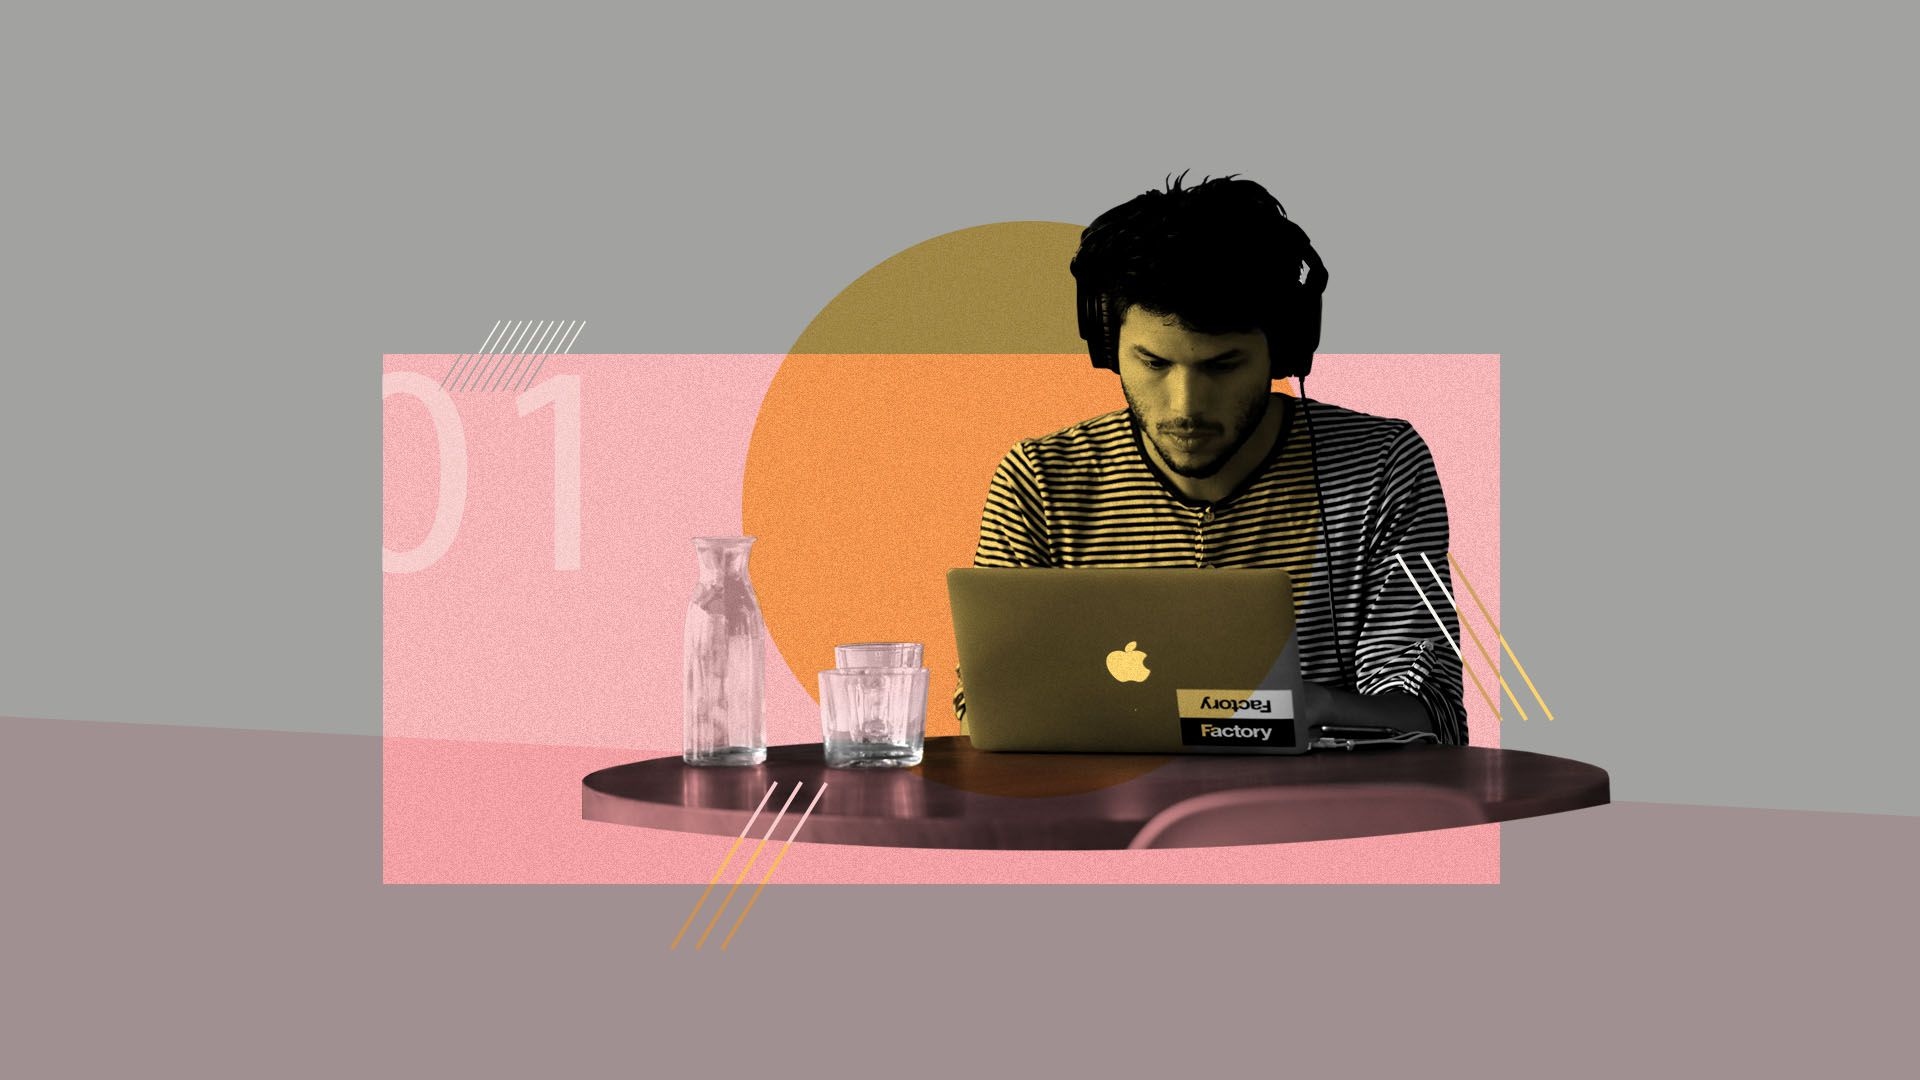 Illustration of a person working at a desk